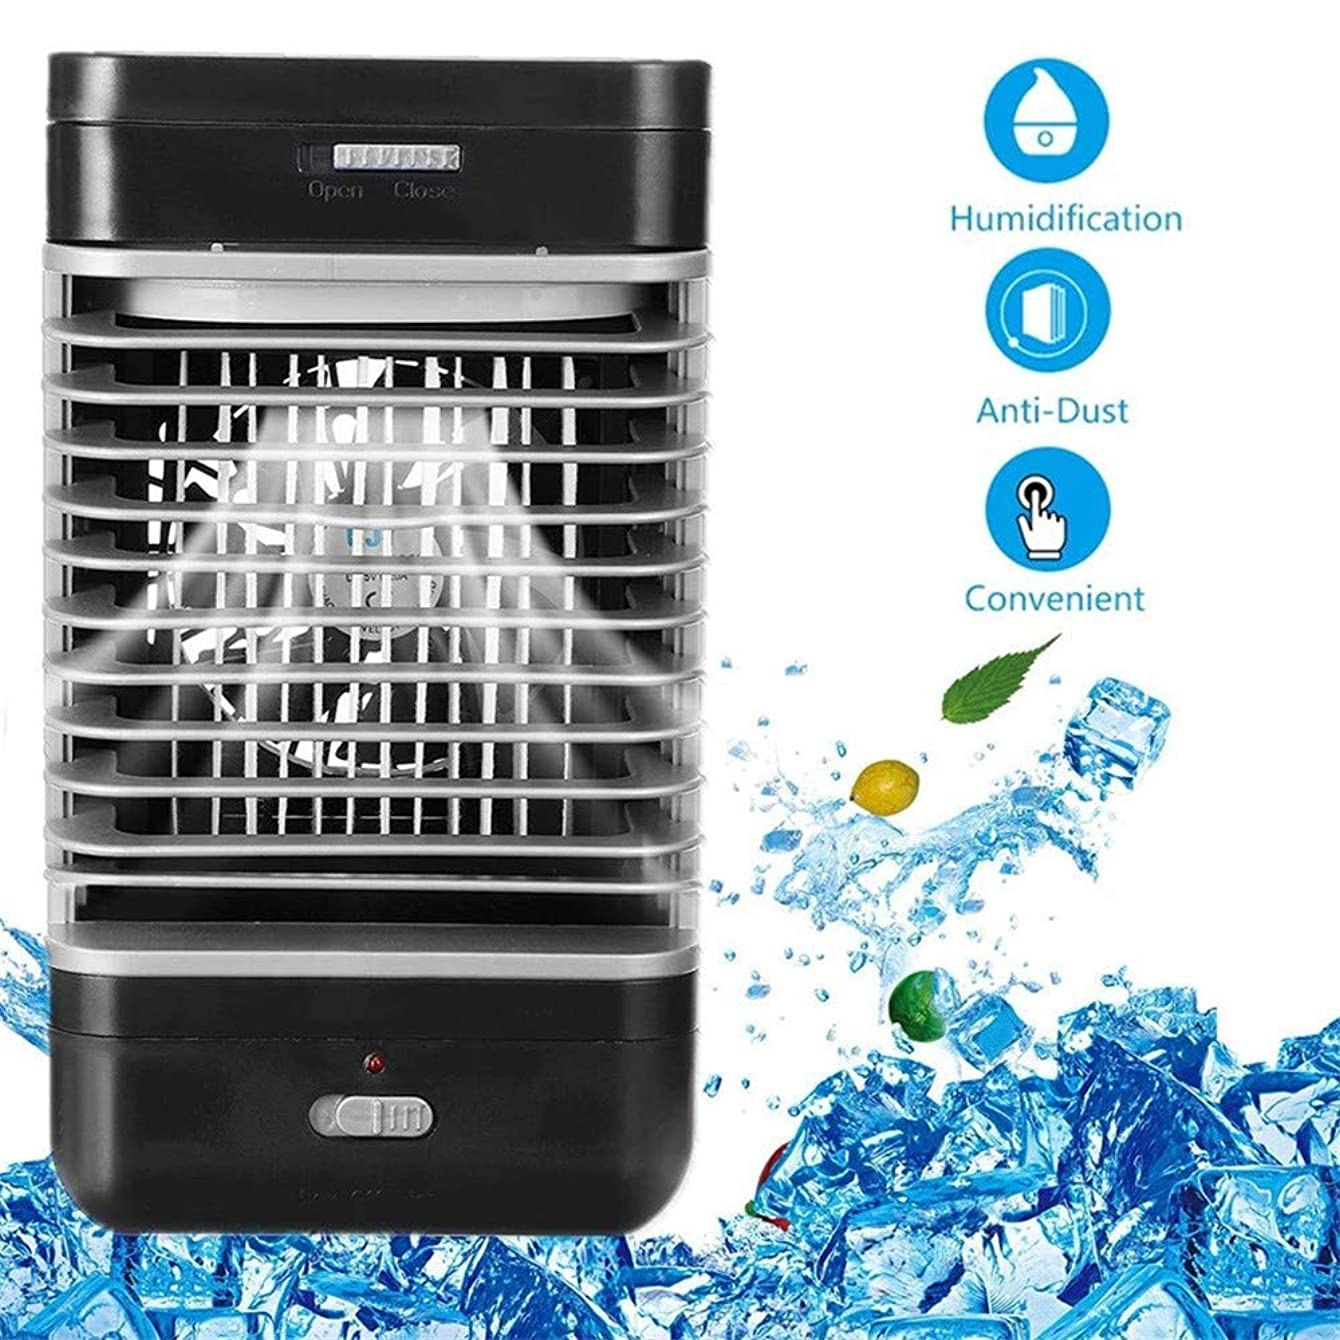 Portable space air fan cooler desktop air conditioner 3 In 1 Small cool air conditioner,Home water Humidifier & Purifier With 2 Speeds For Quick Office Bedroom Outdoor